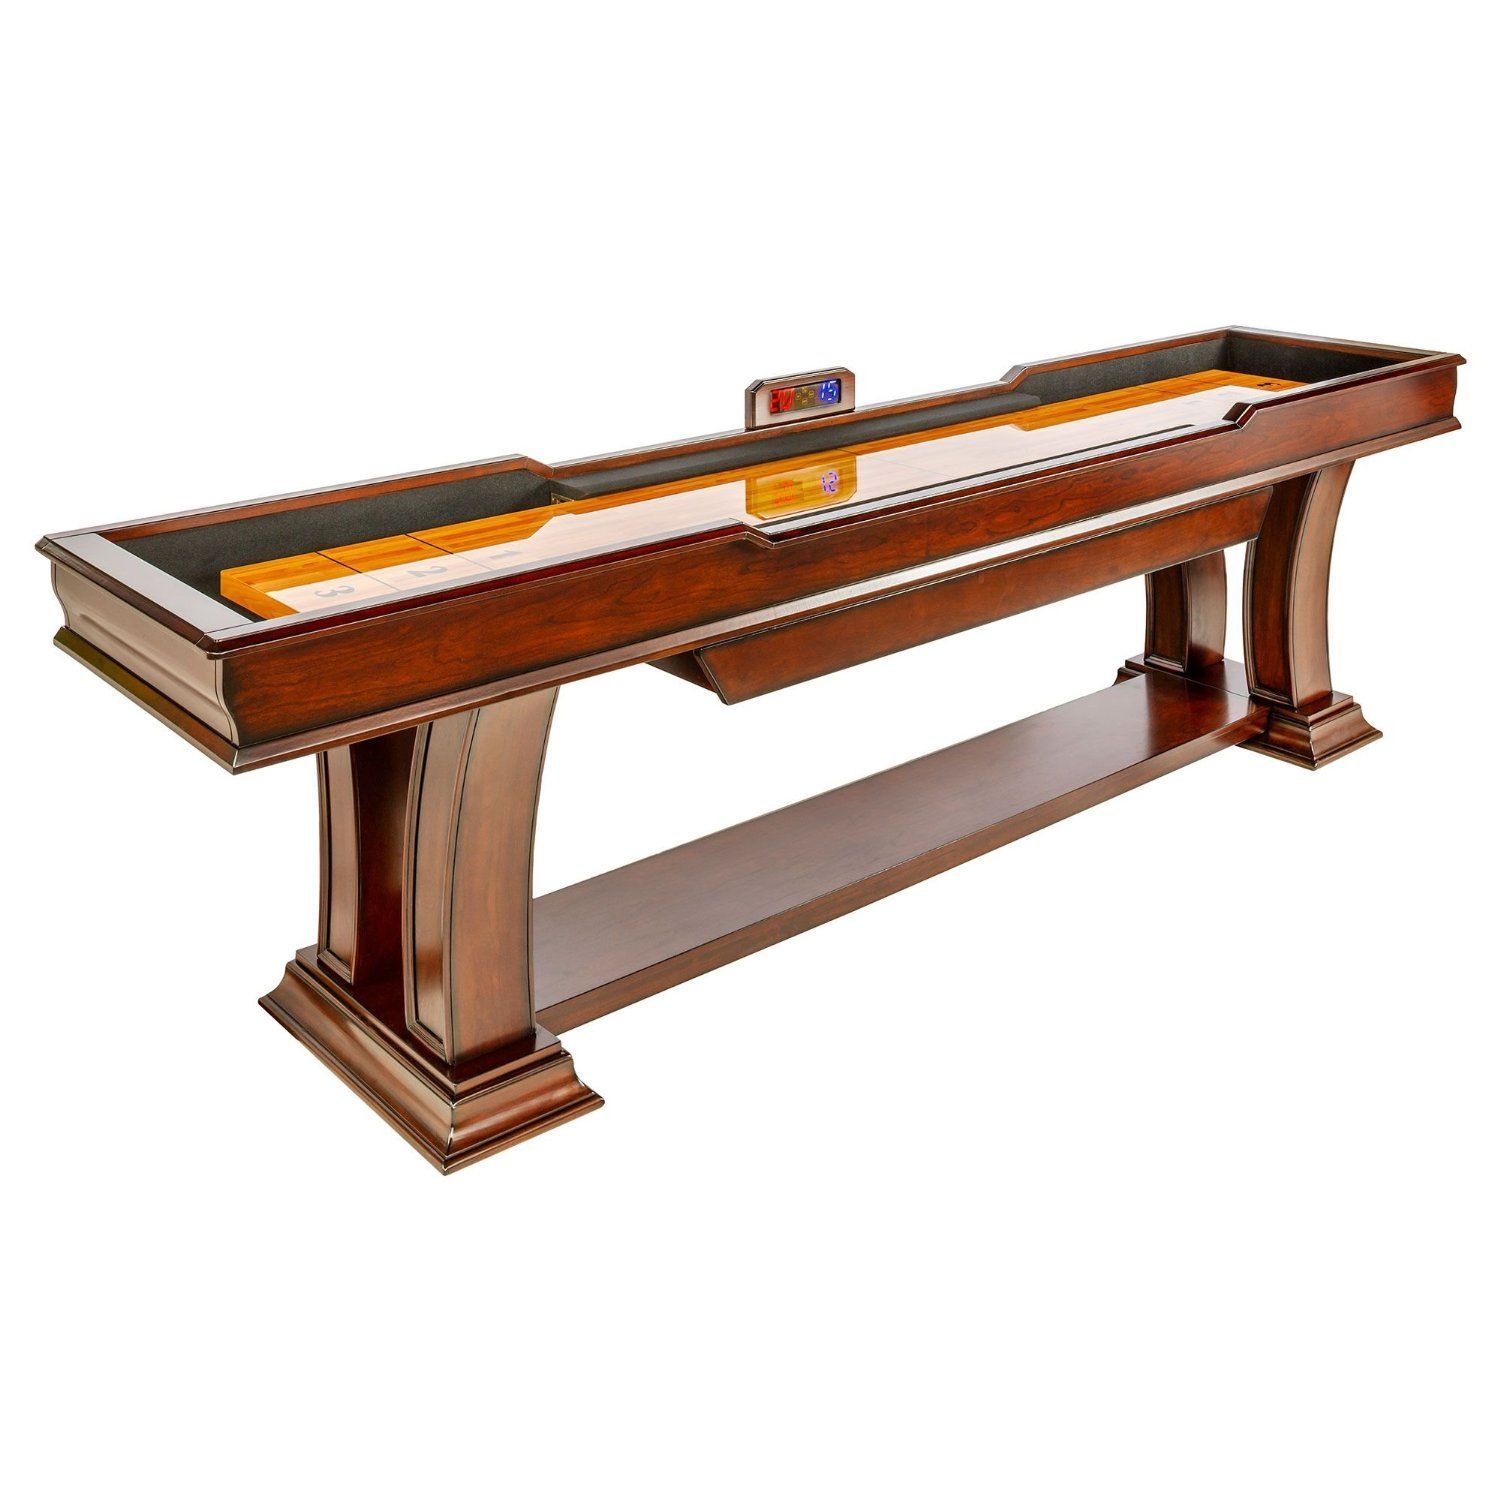 table game coolpooltables shuffleboard tables hide for pool new rexx plank services sale com used atlanta moving tbl red